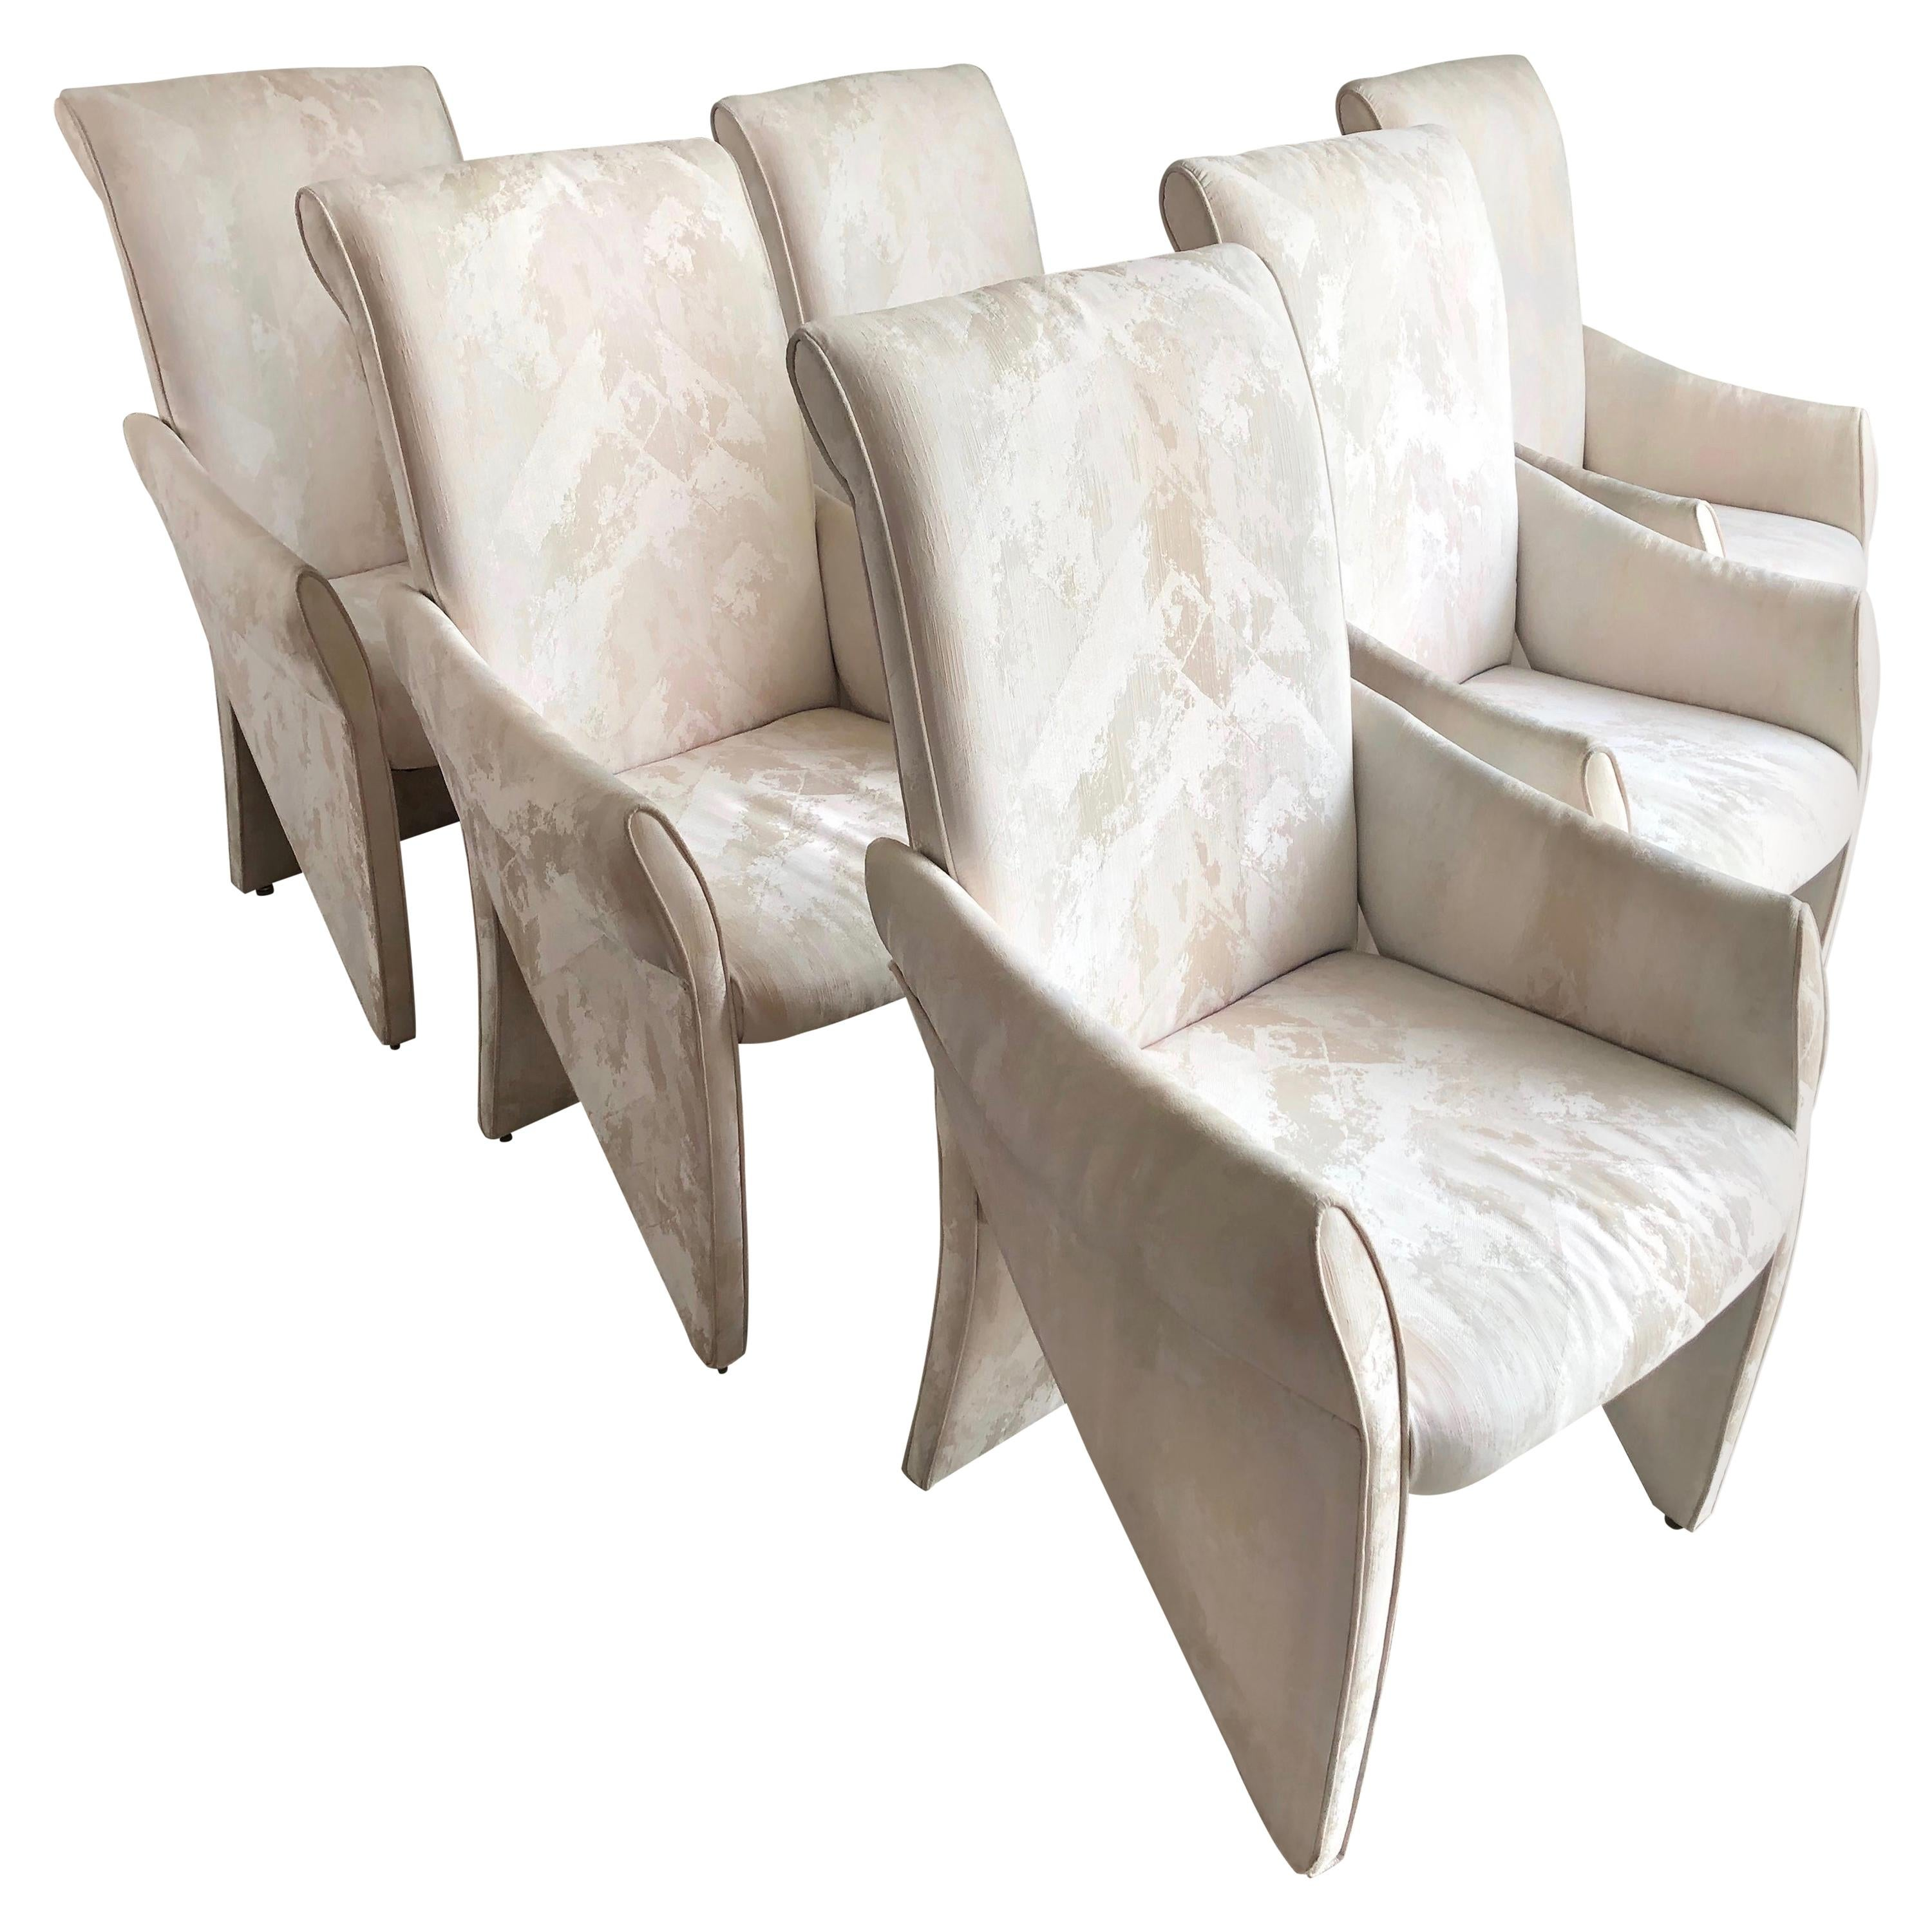 Set of 6 Sculptural Dining Chairs by Carson's of Highpoint